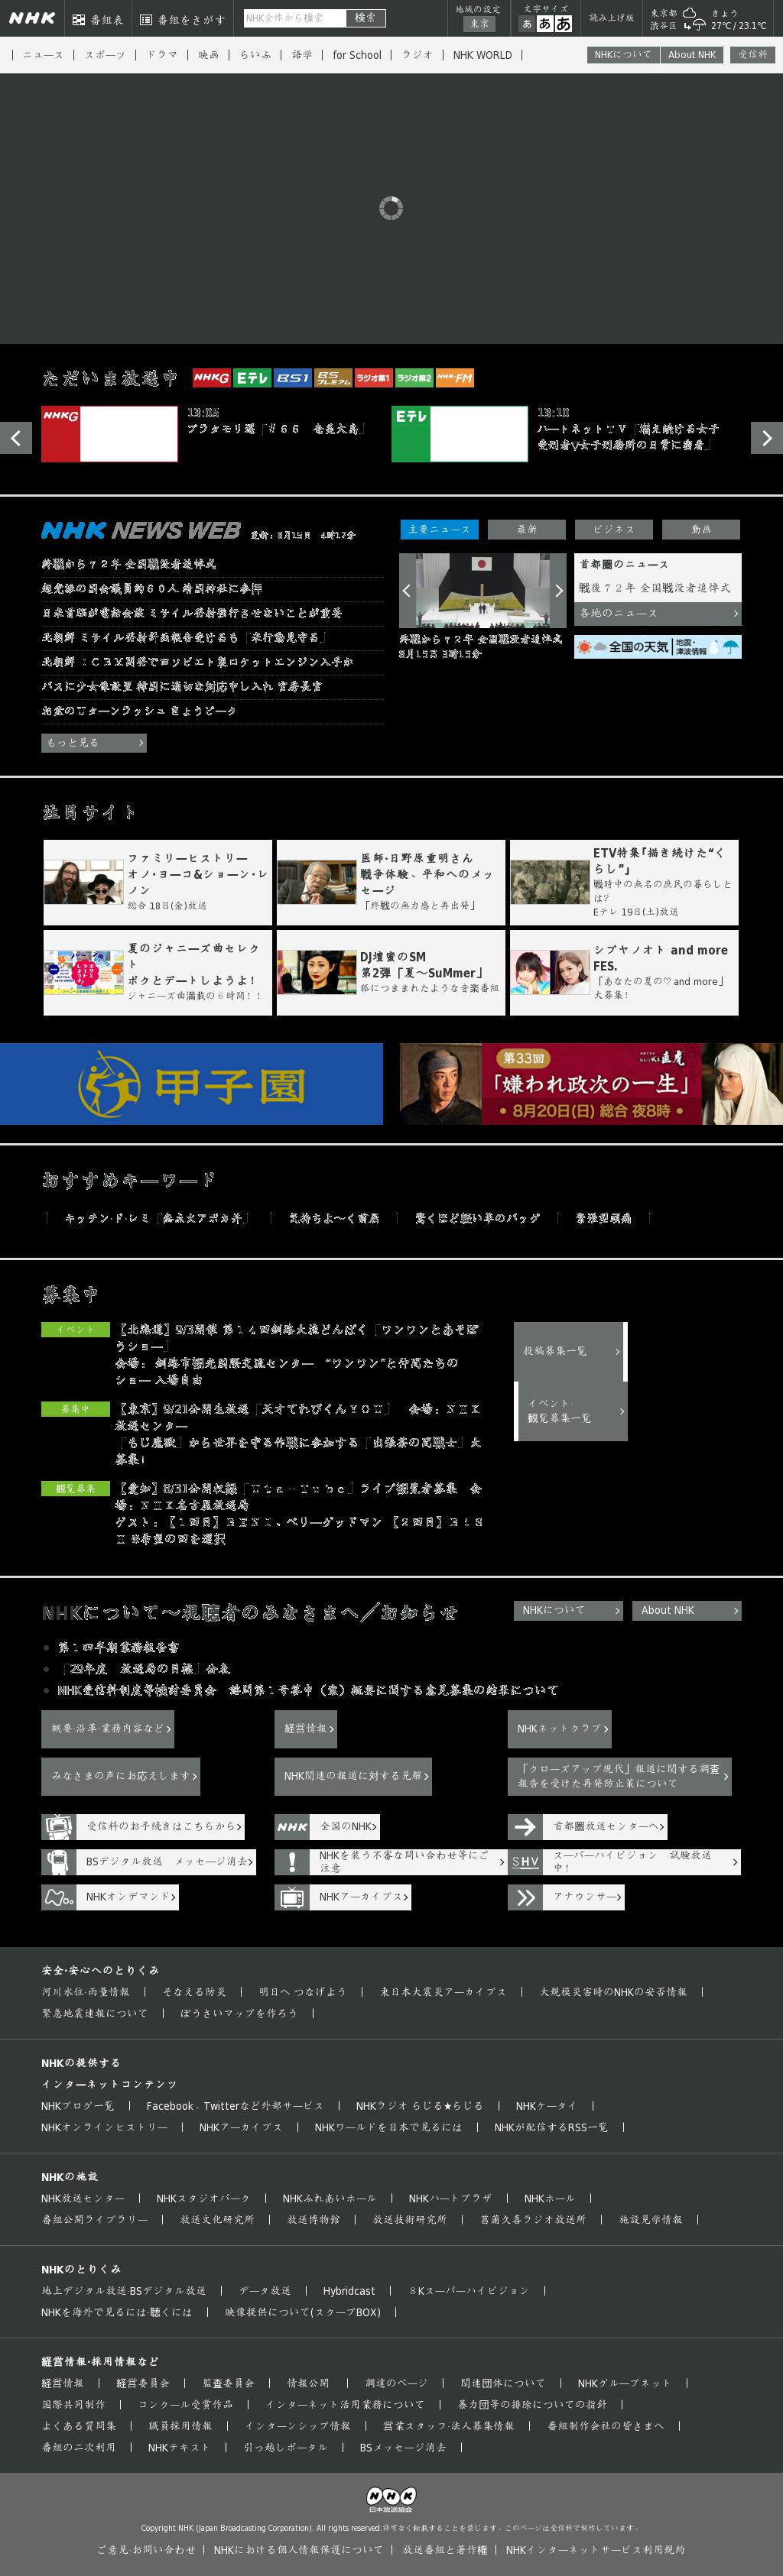 NHK Online at Tuesday Aug. 15, 2017, 4:14 a.m. UTC